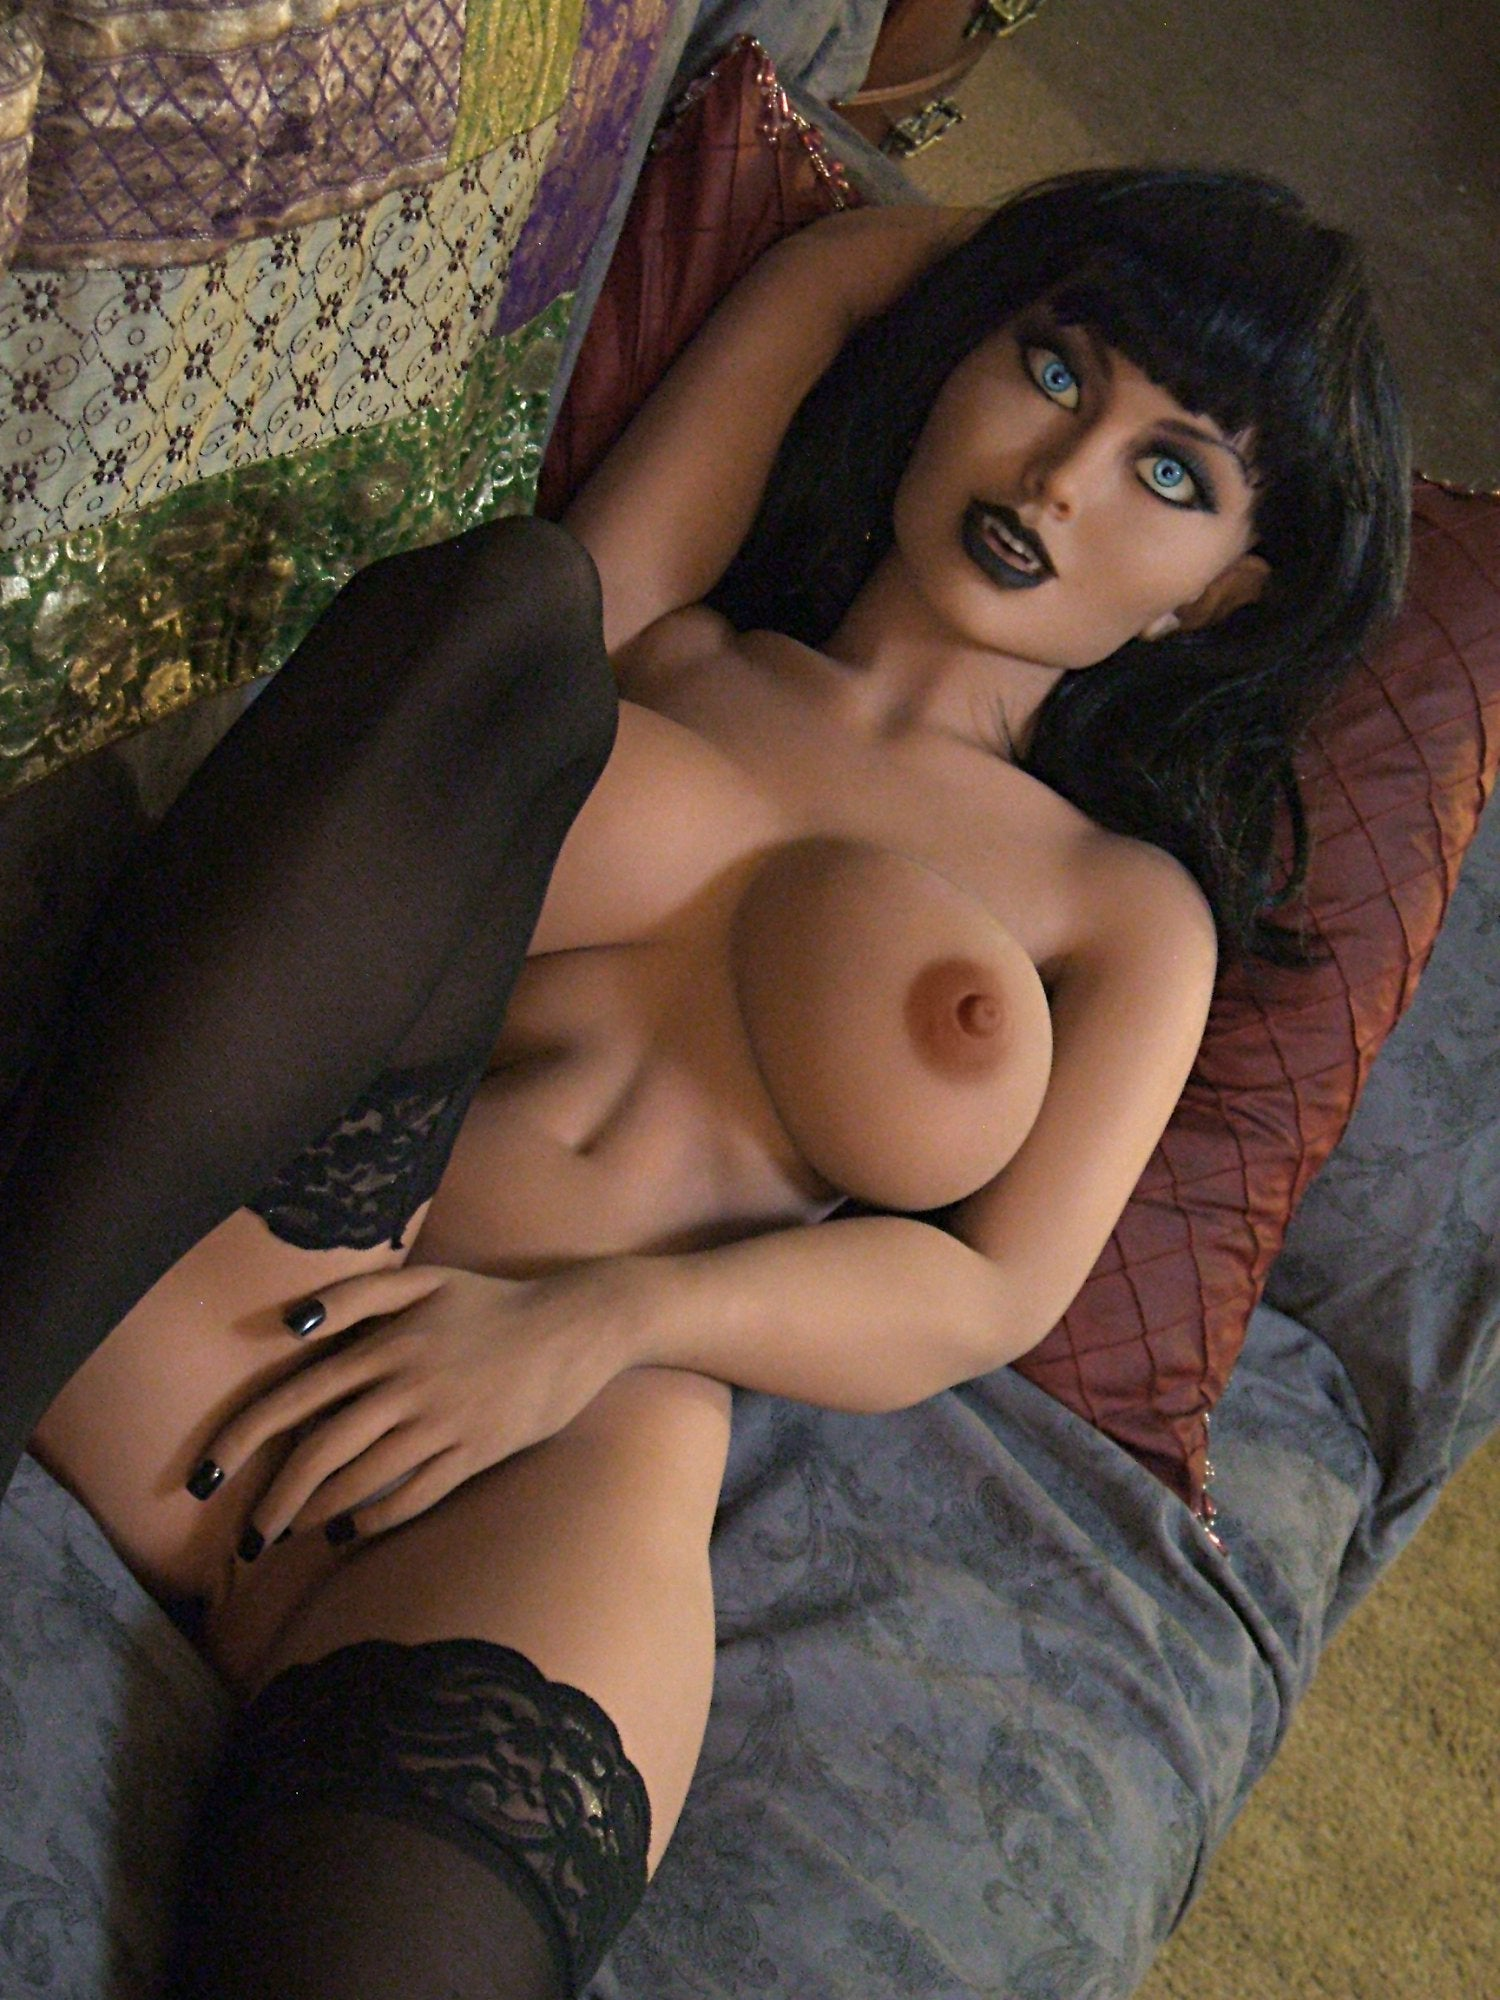 joanna 148cm black hair fantasy medium tits tpe yl anime small sex doll(4)